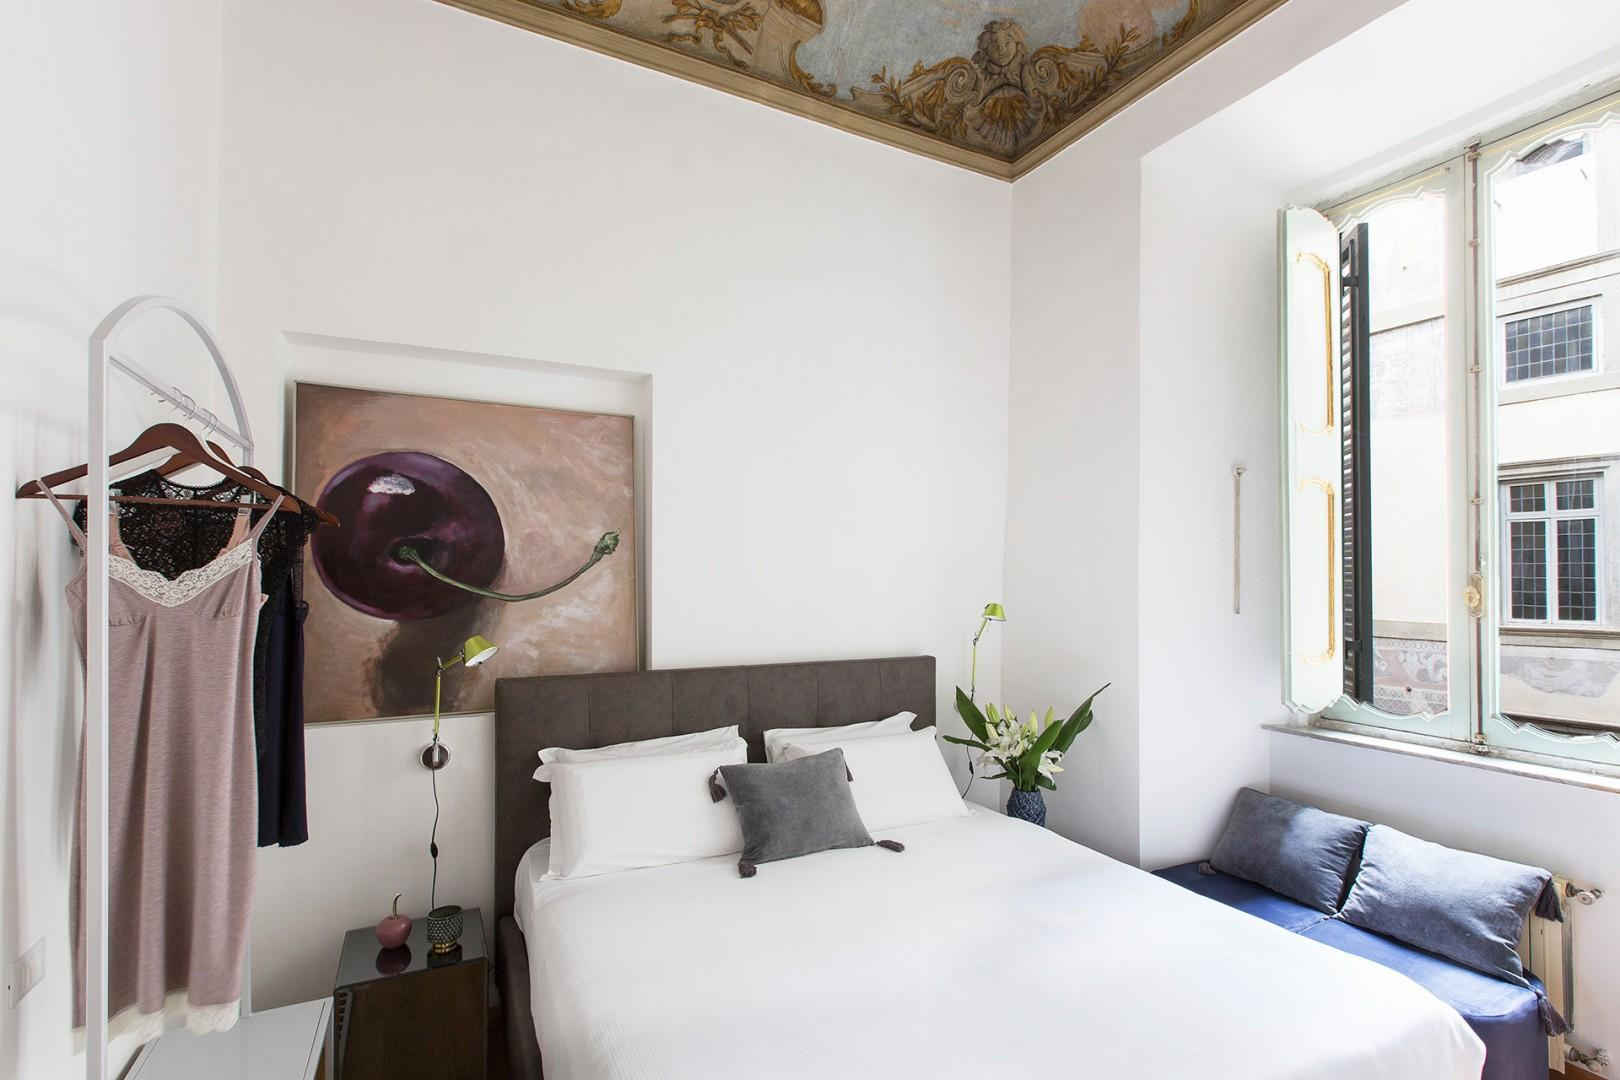 Bedroom 3 has charming frescoes of angles on the ceiling by famous baroque artist Nicolas Poussin.